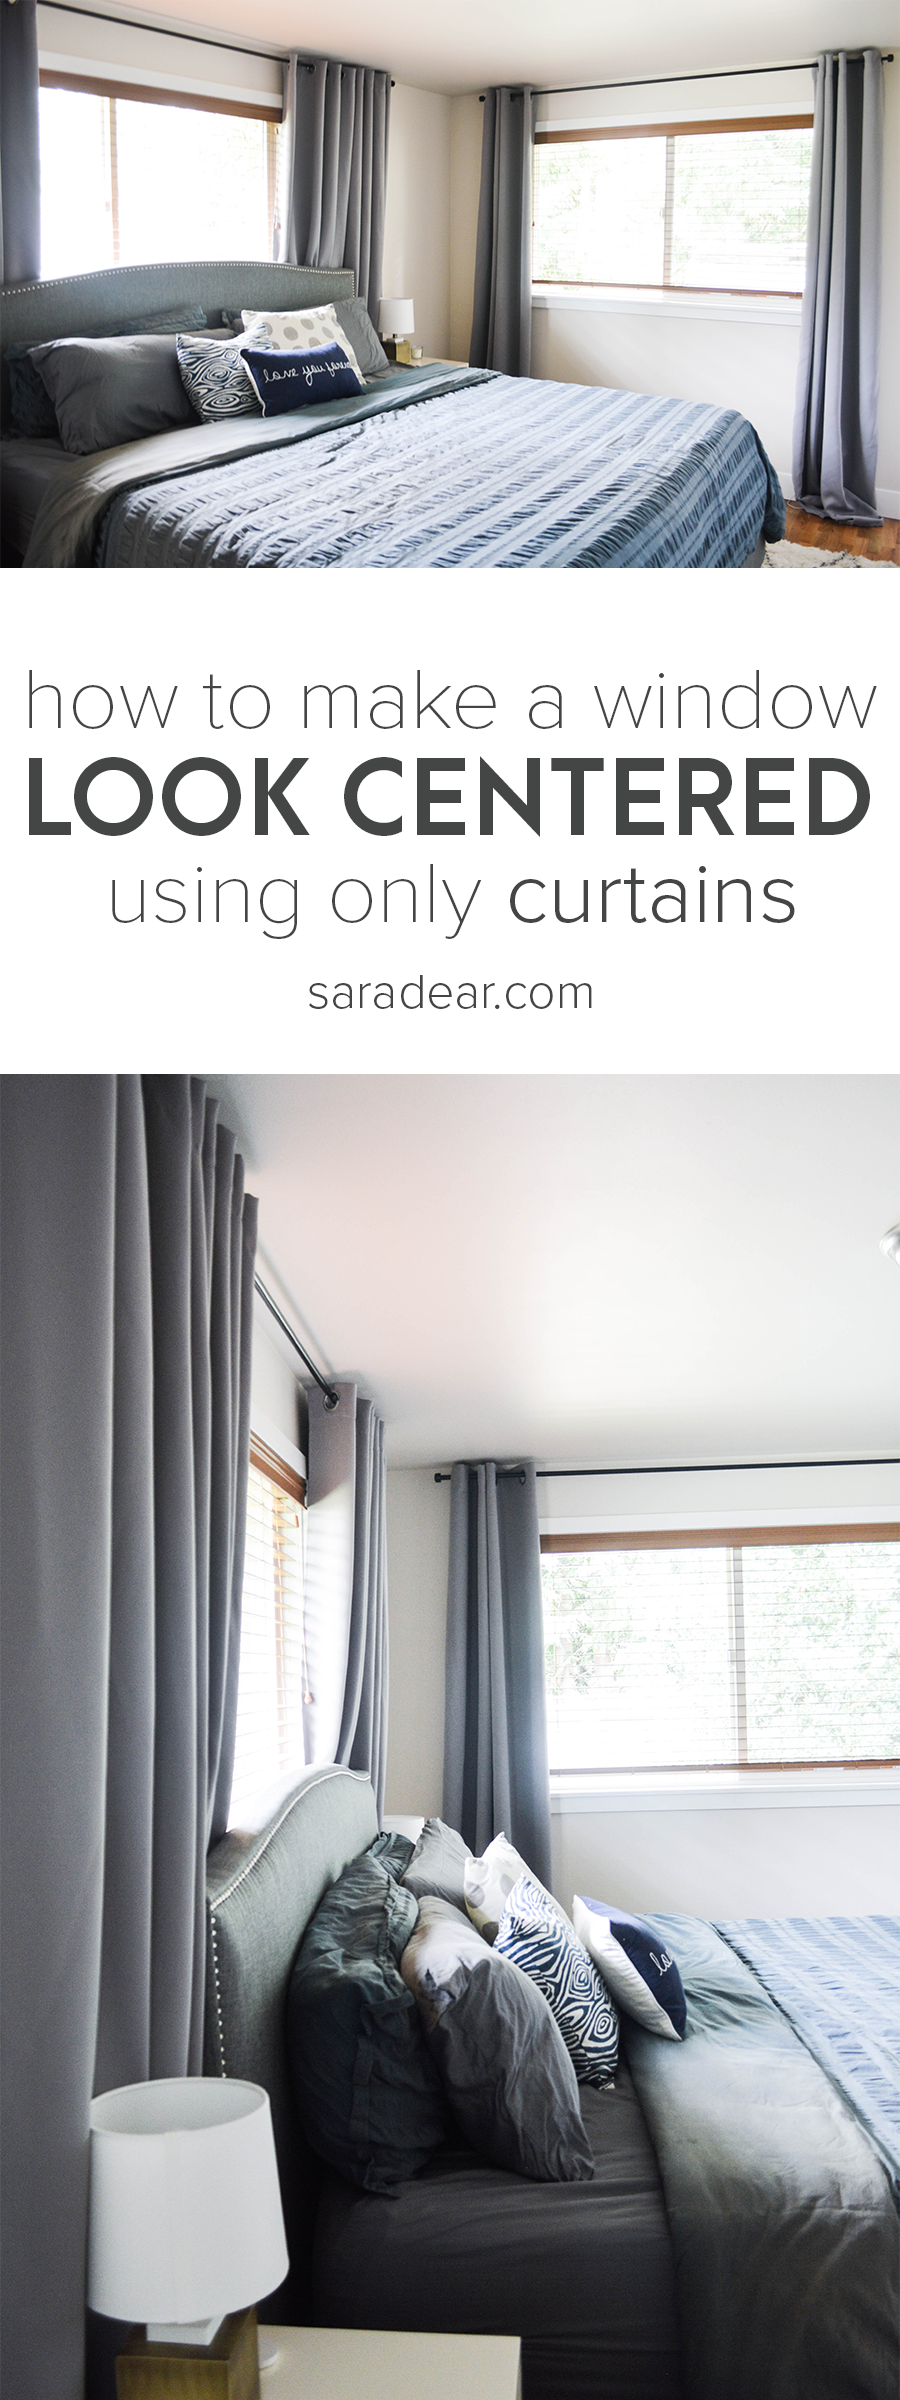 move a window center a bed with only curtains.png